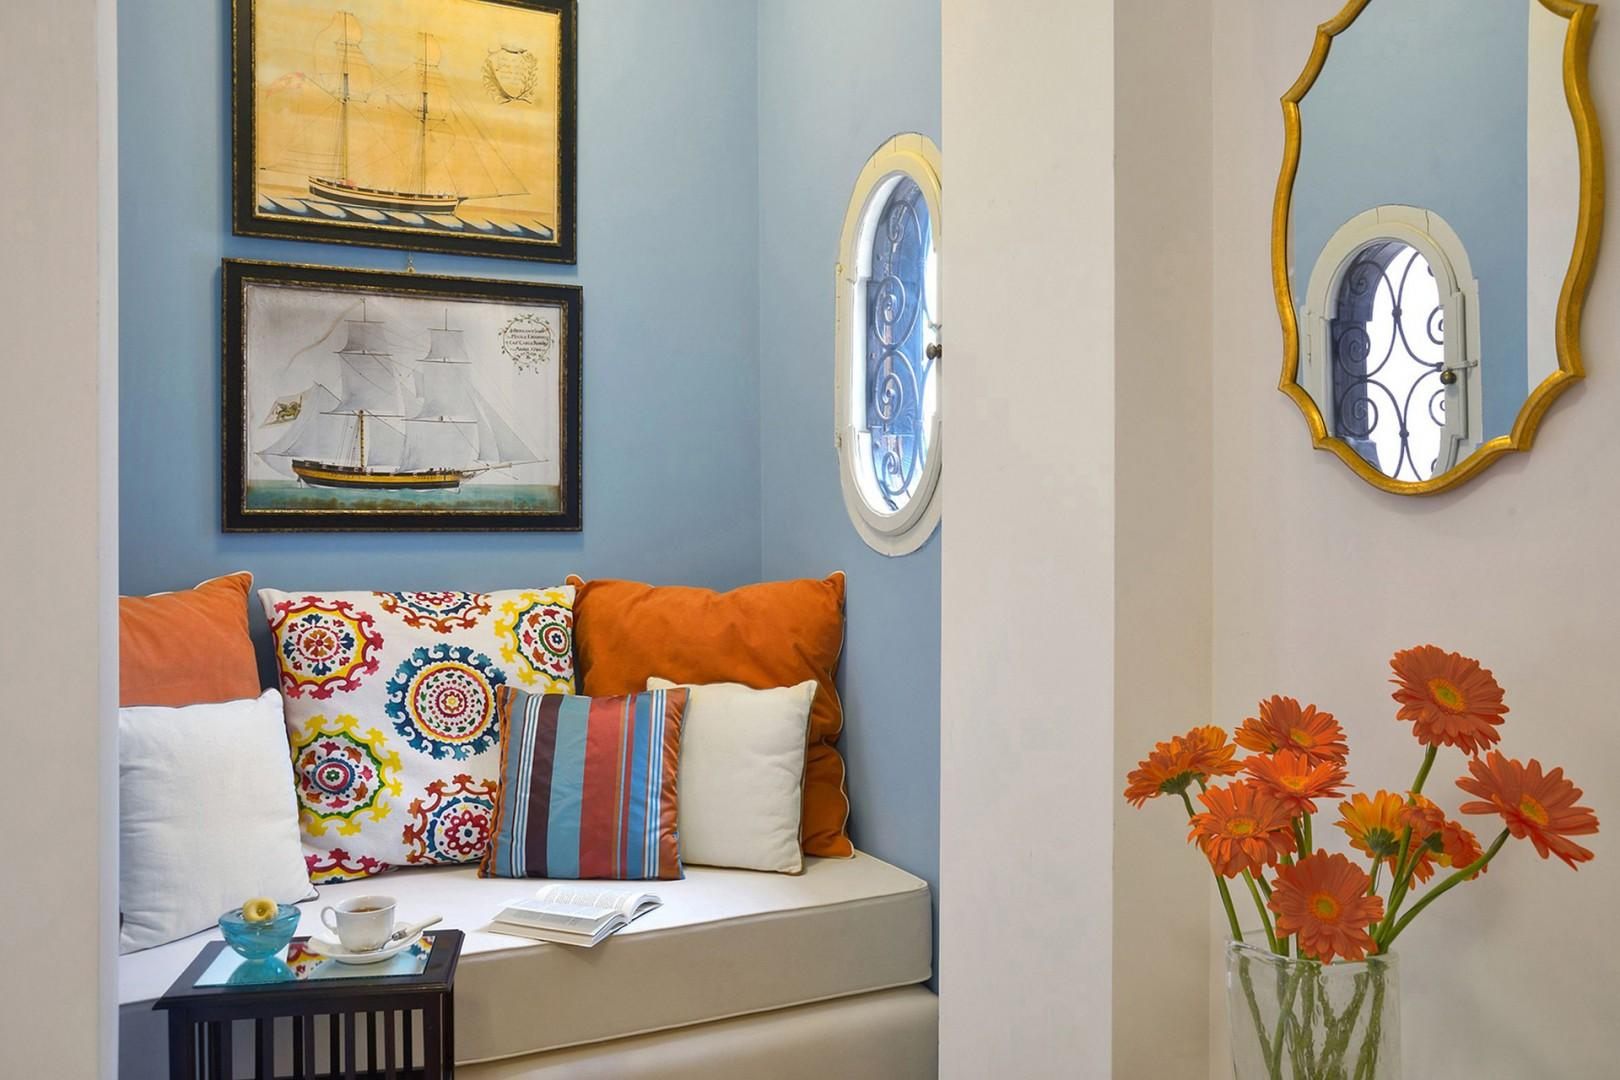 Little sofa with a porthole window for some quiet time in bedroom 2.